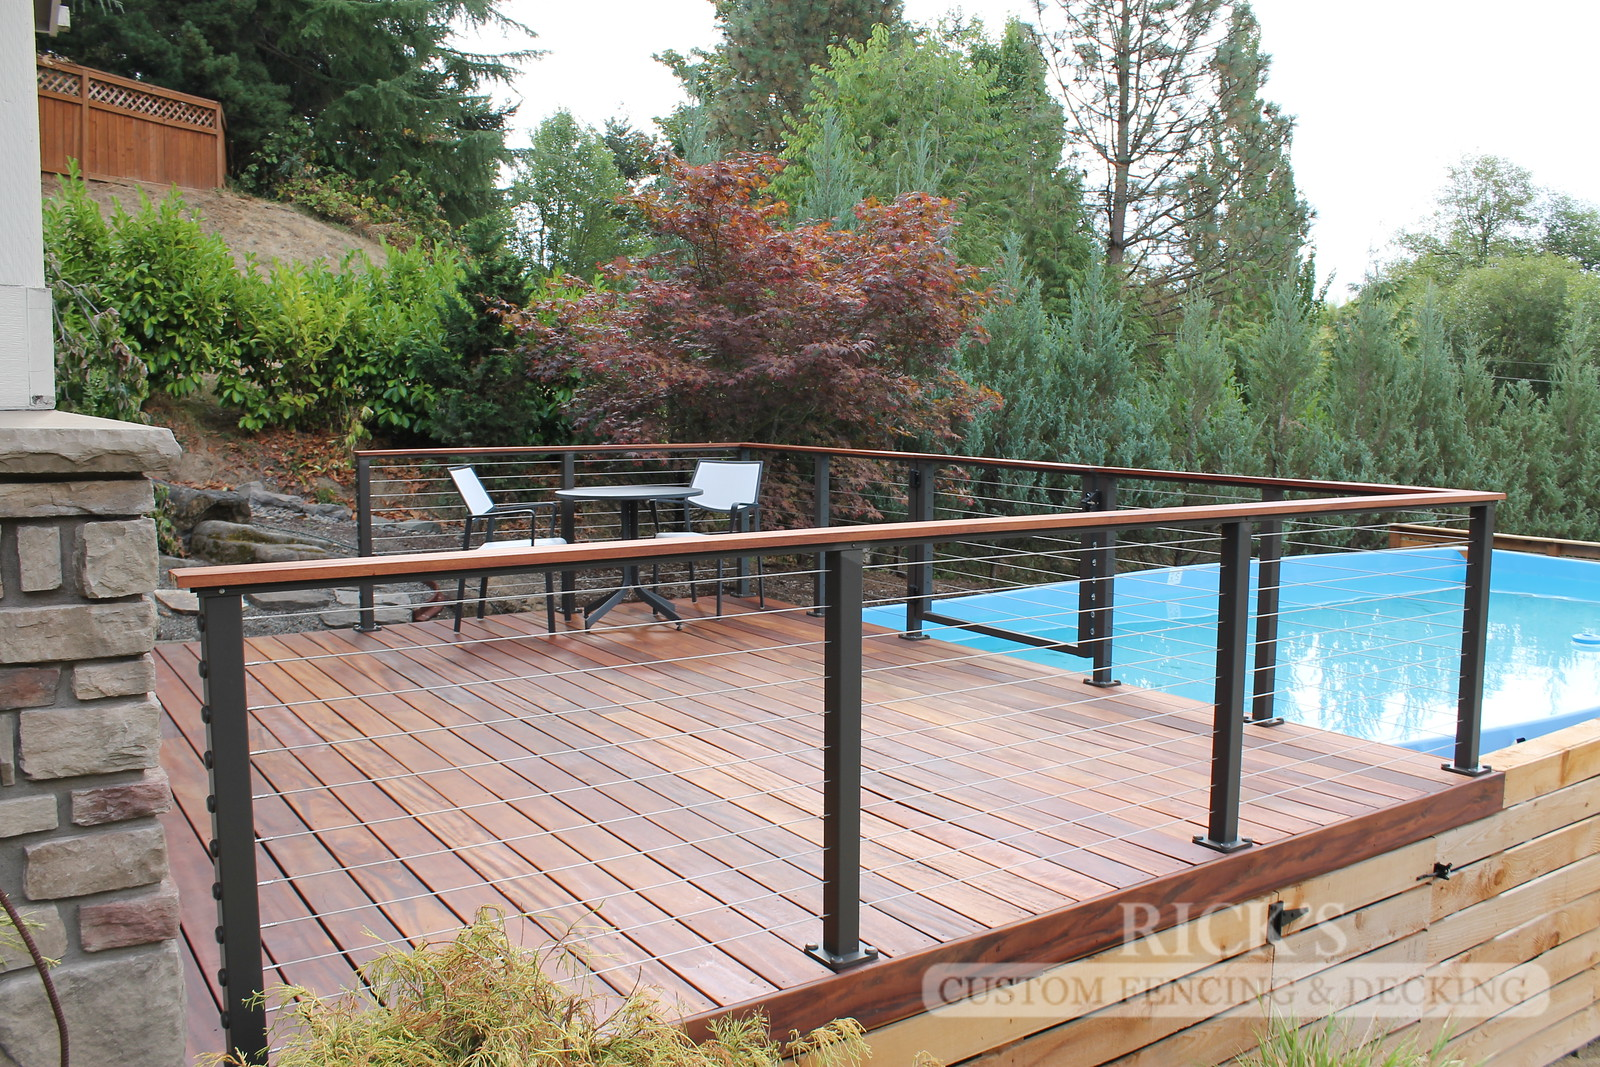 1113 - TigerWood Hardwood Decking